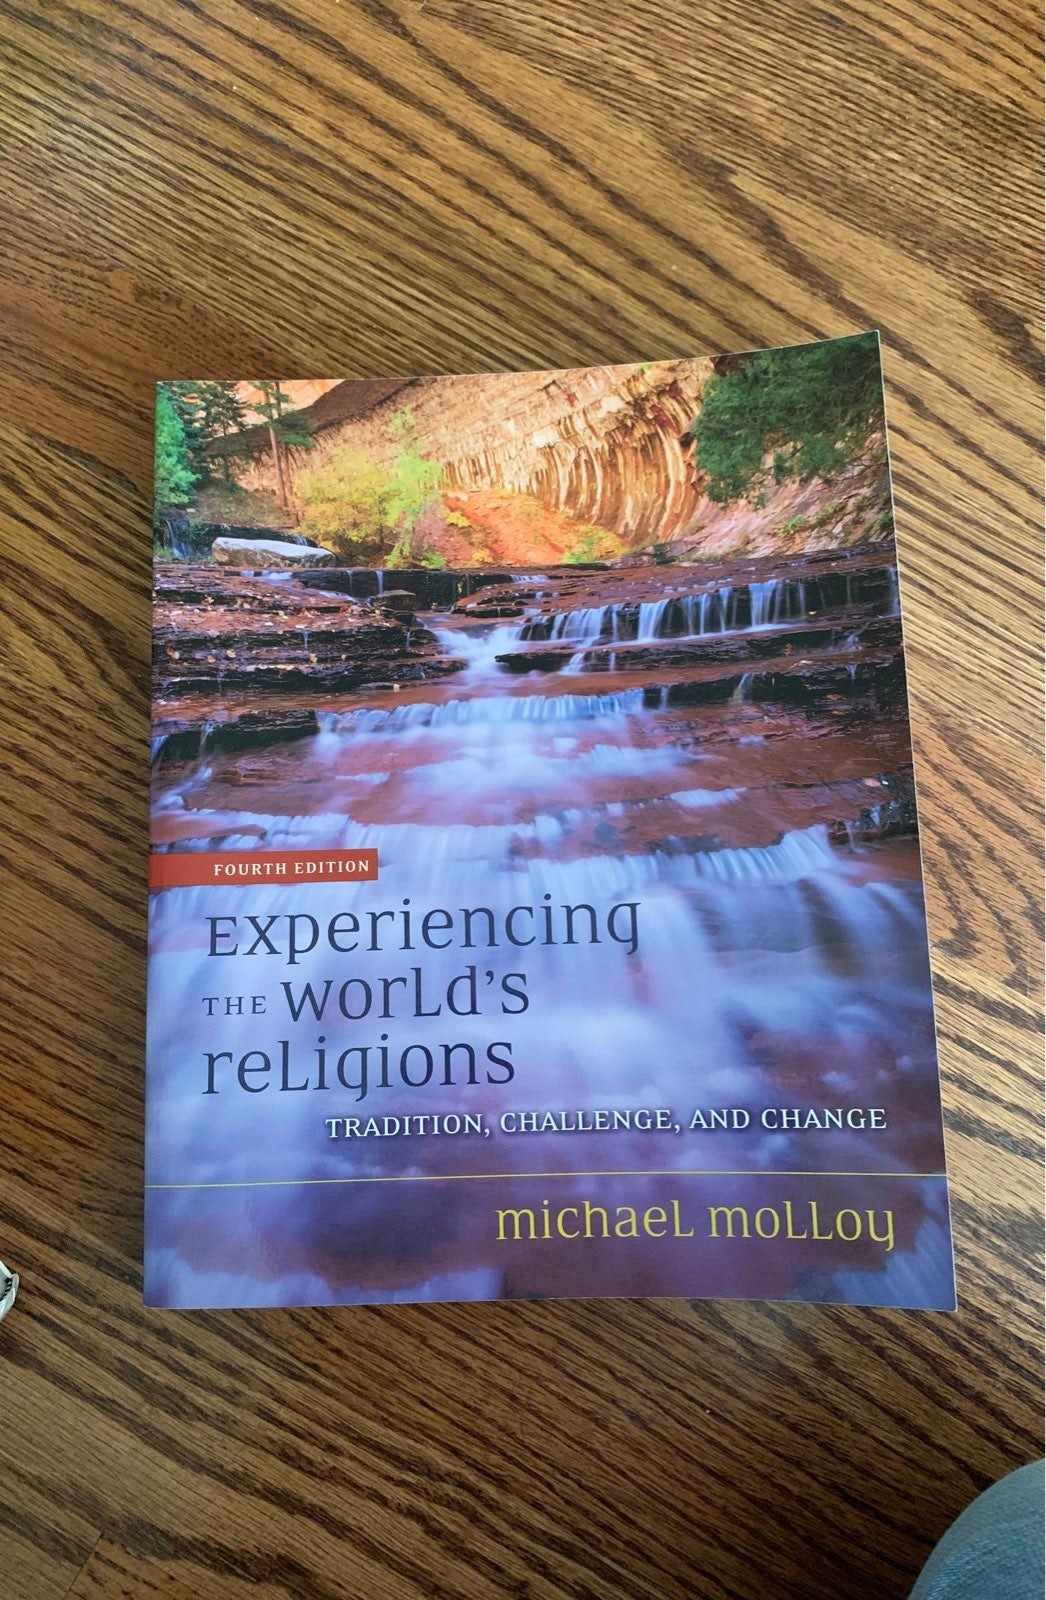 Experiencing the worlds religions by mic